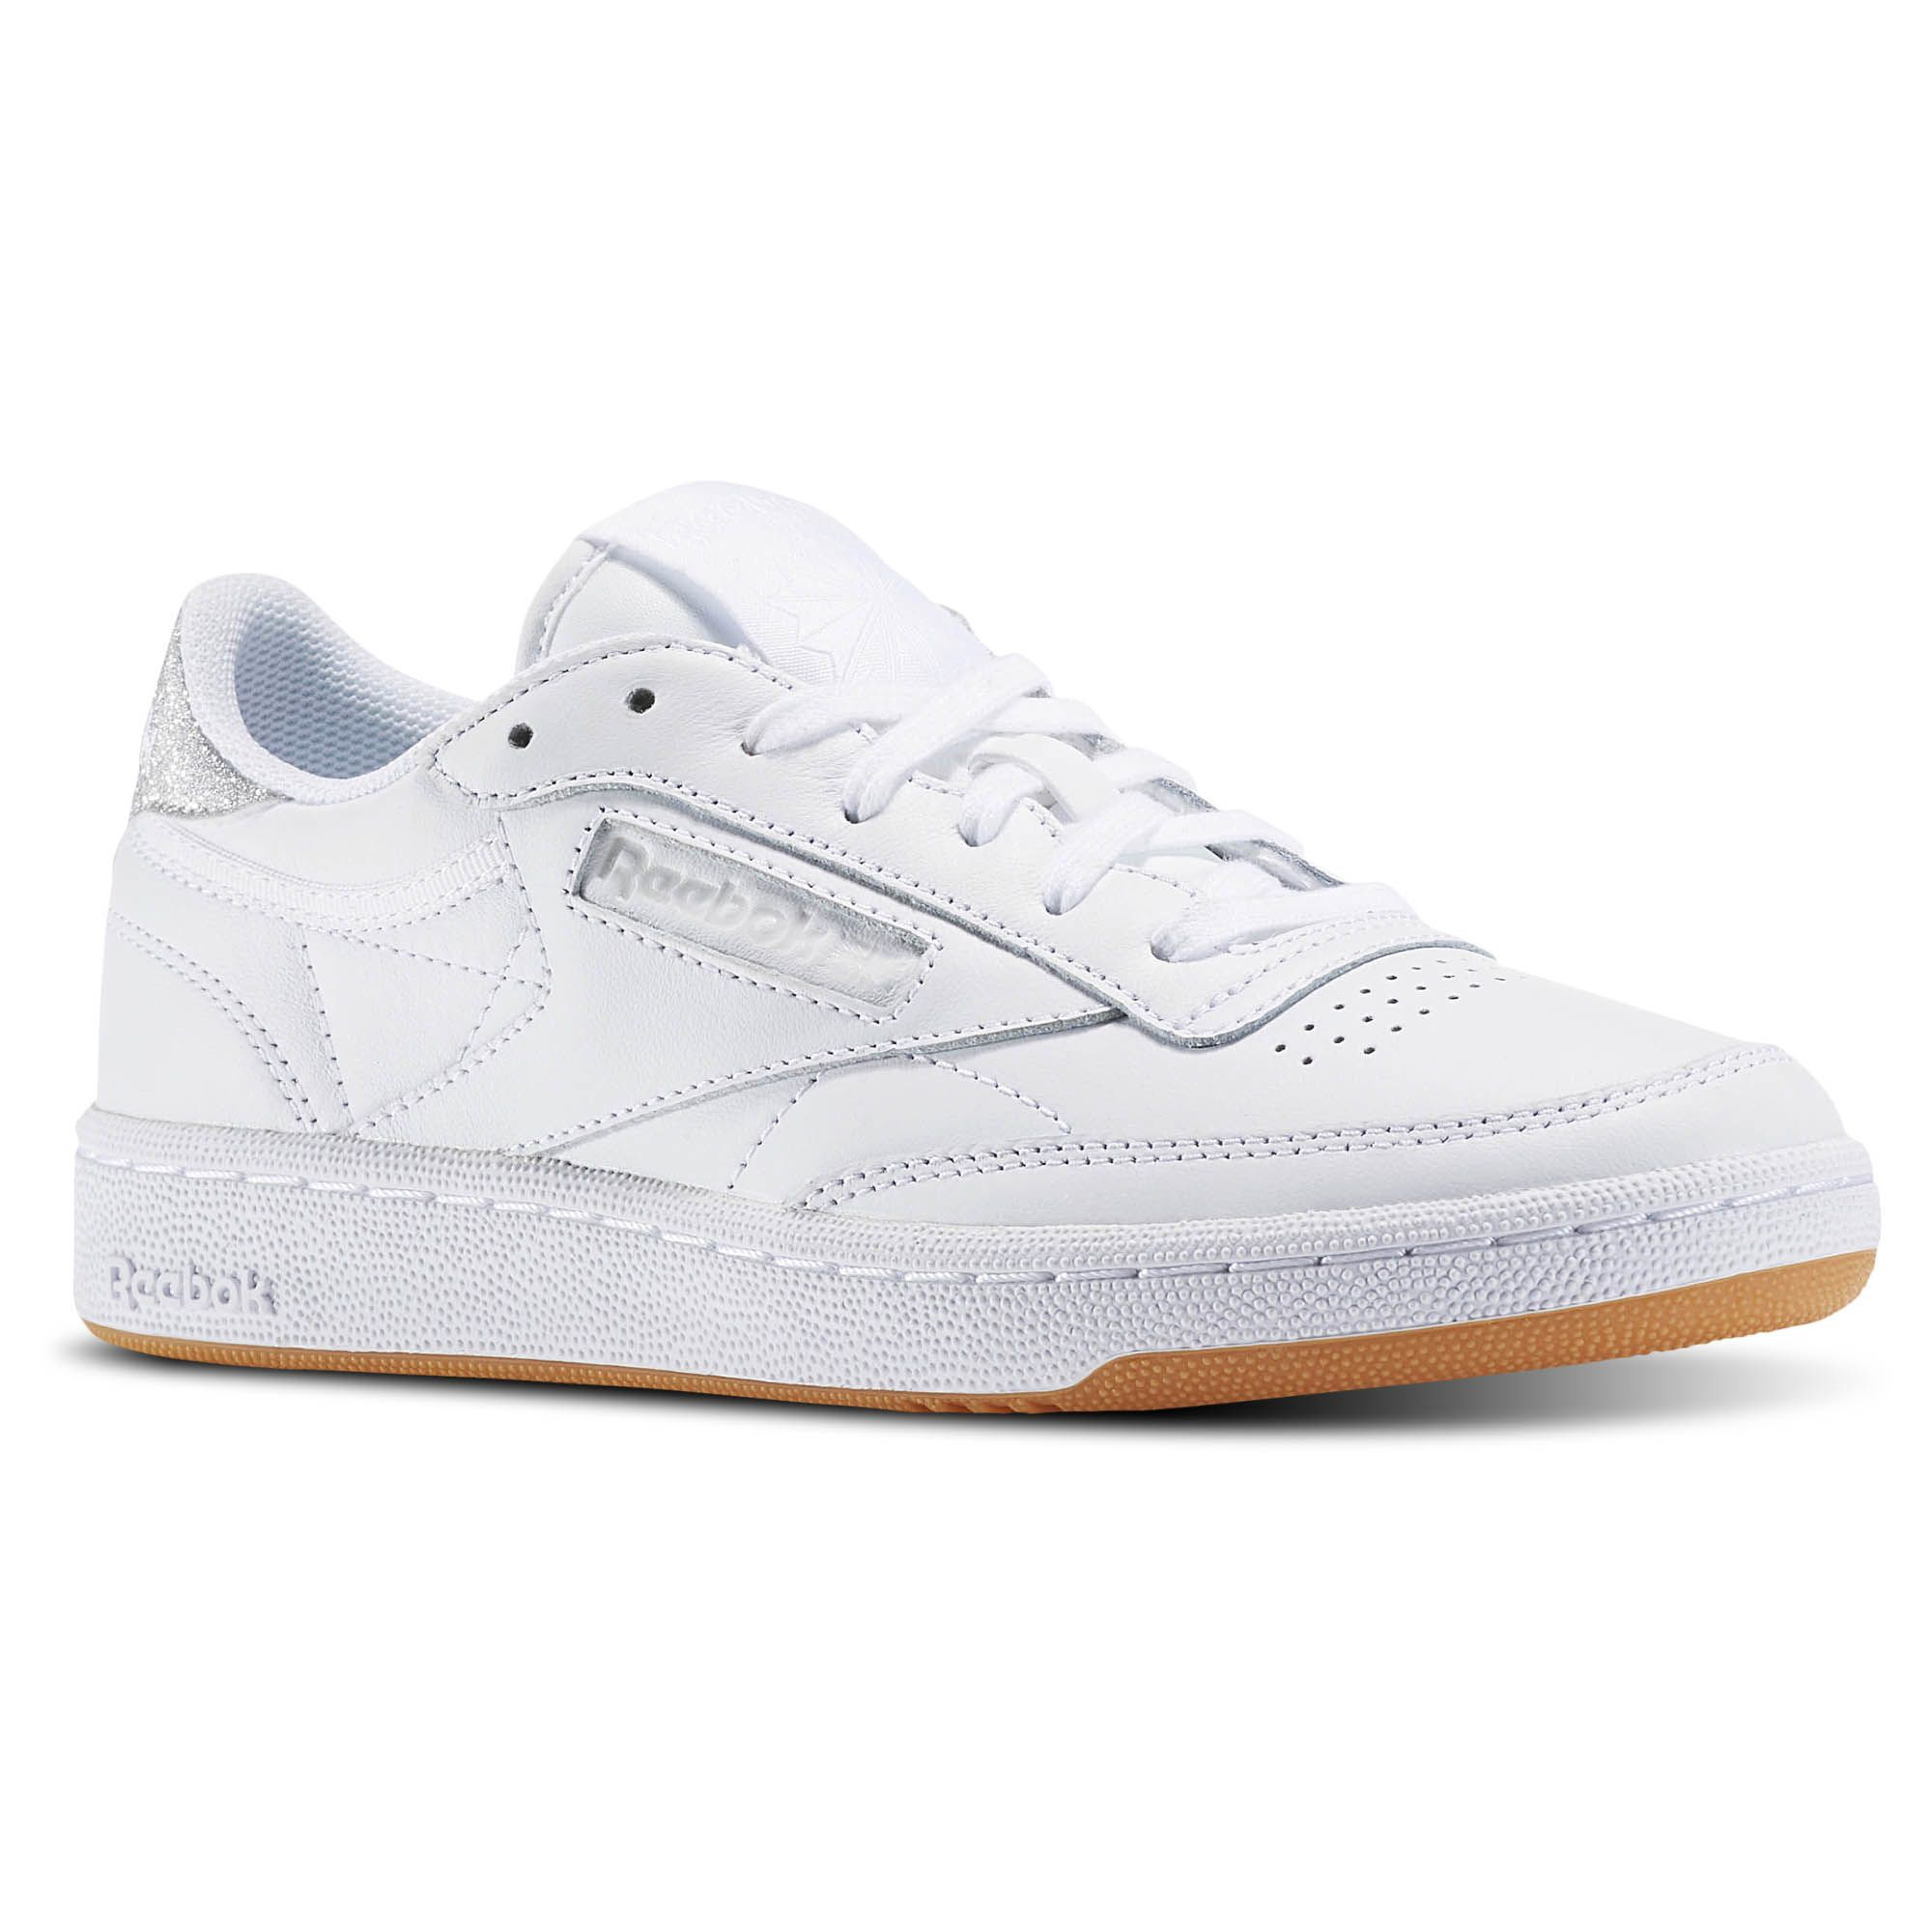 Club C 85 Diamond Sneaker